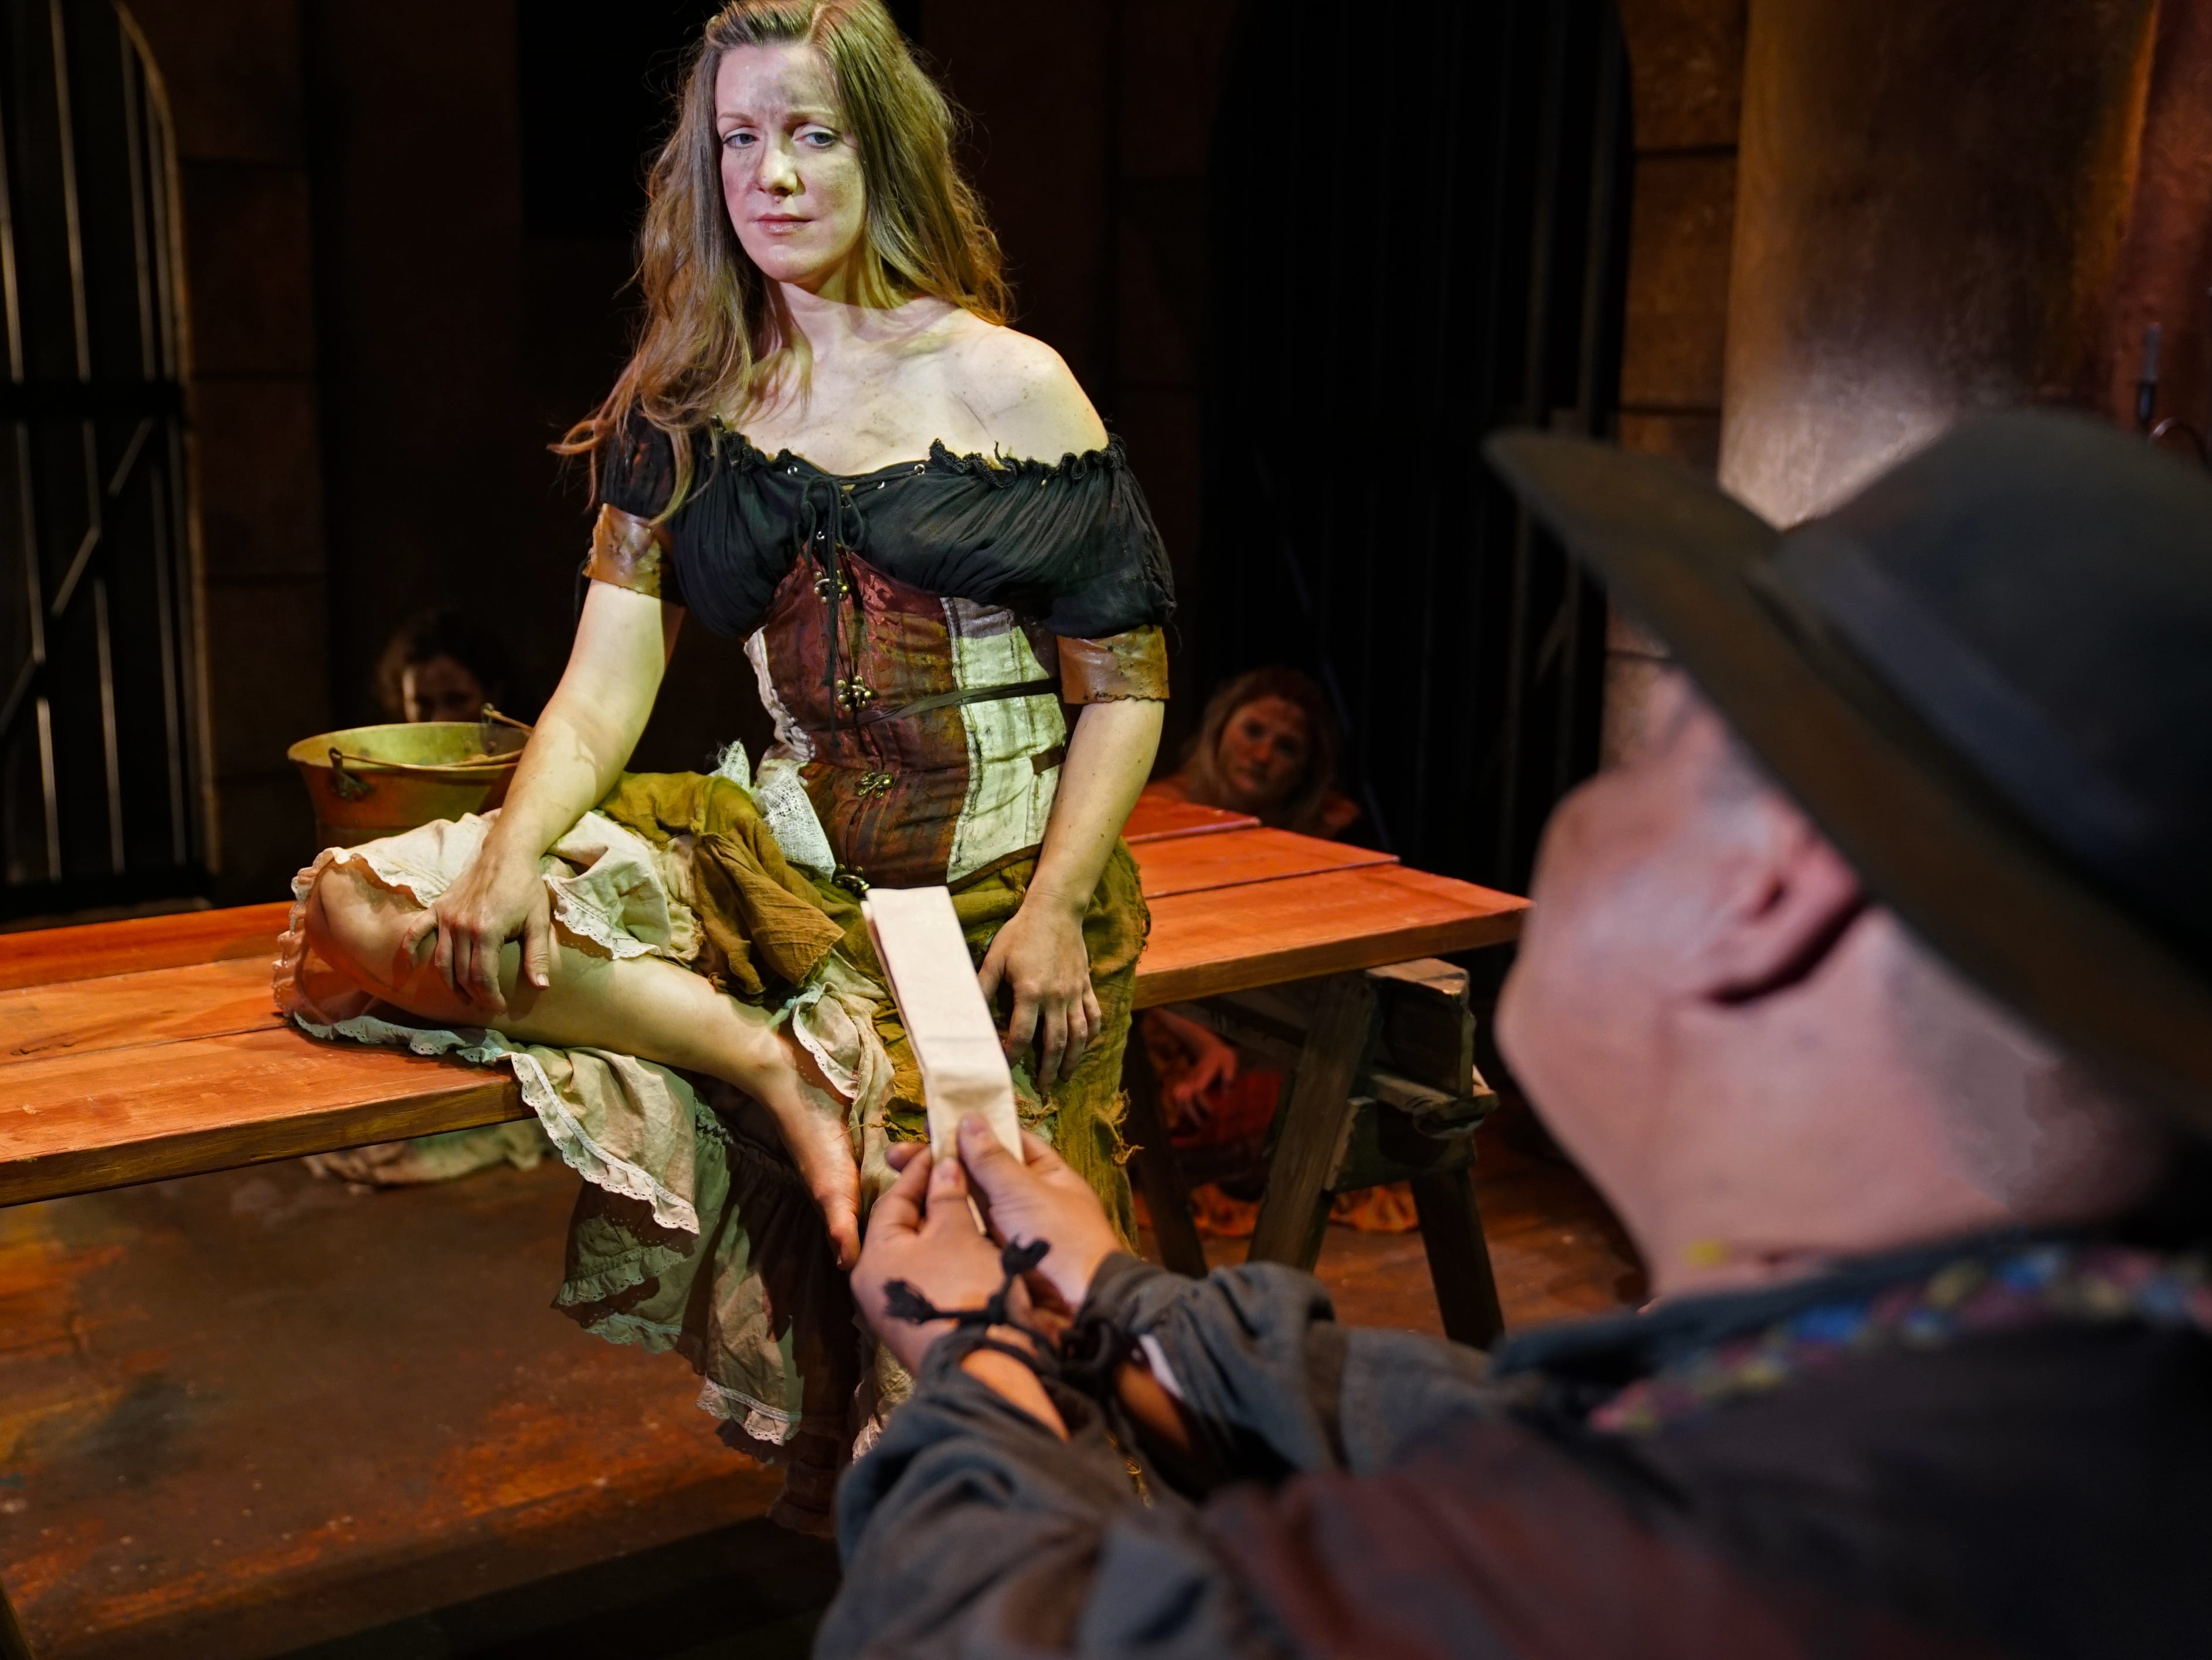 """Mary Henderson plays """"Aldonza"""" in Titusville Playhouse's production of """"The Man of La Mancha."""" The show runs through March 17th. For tickets or more information, visit titusvilleplayhouse.com"""